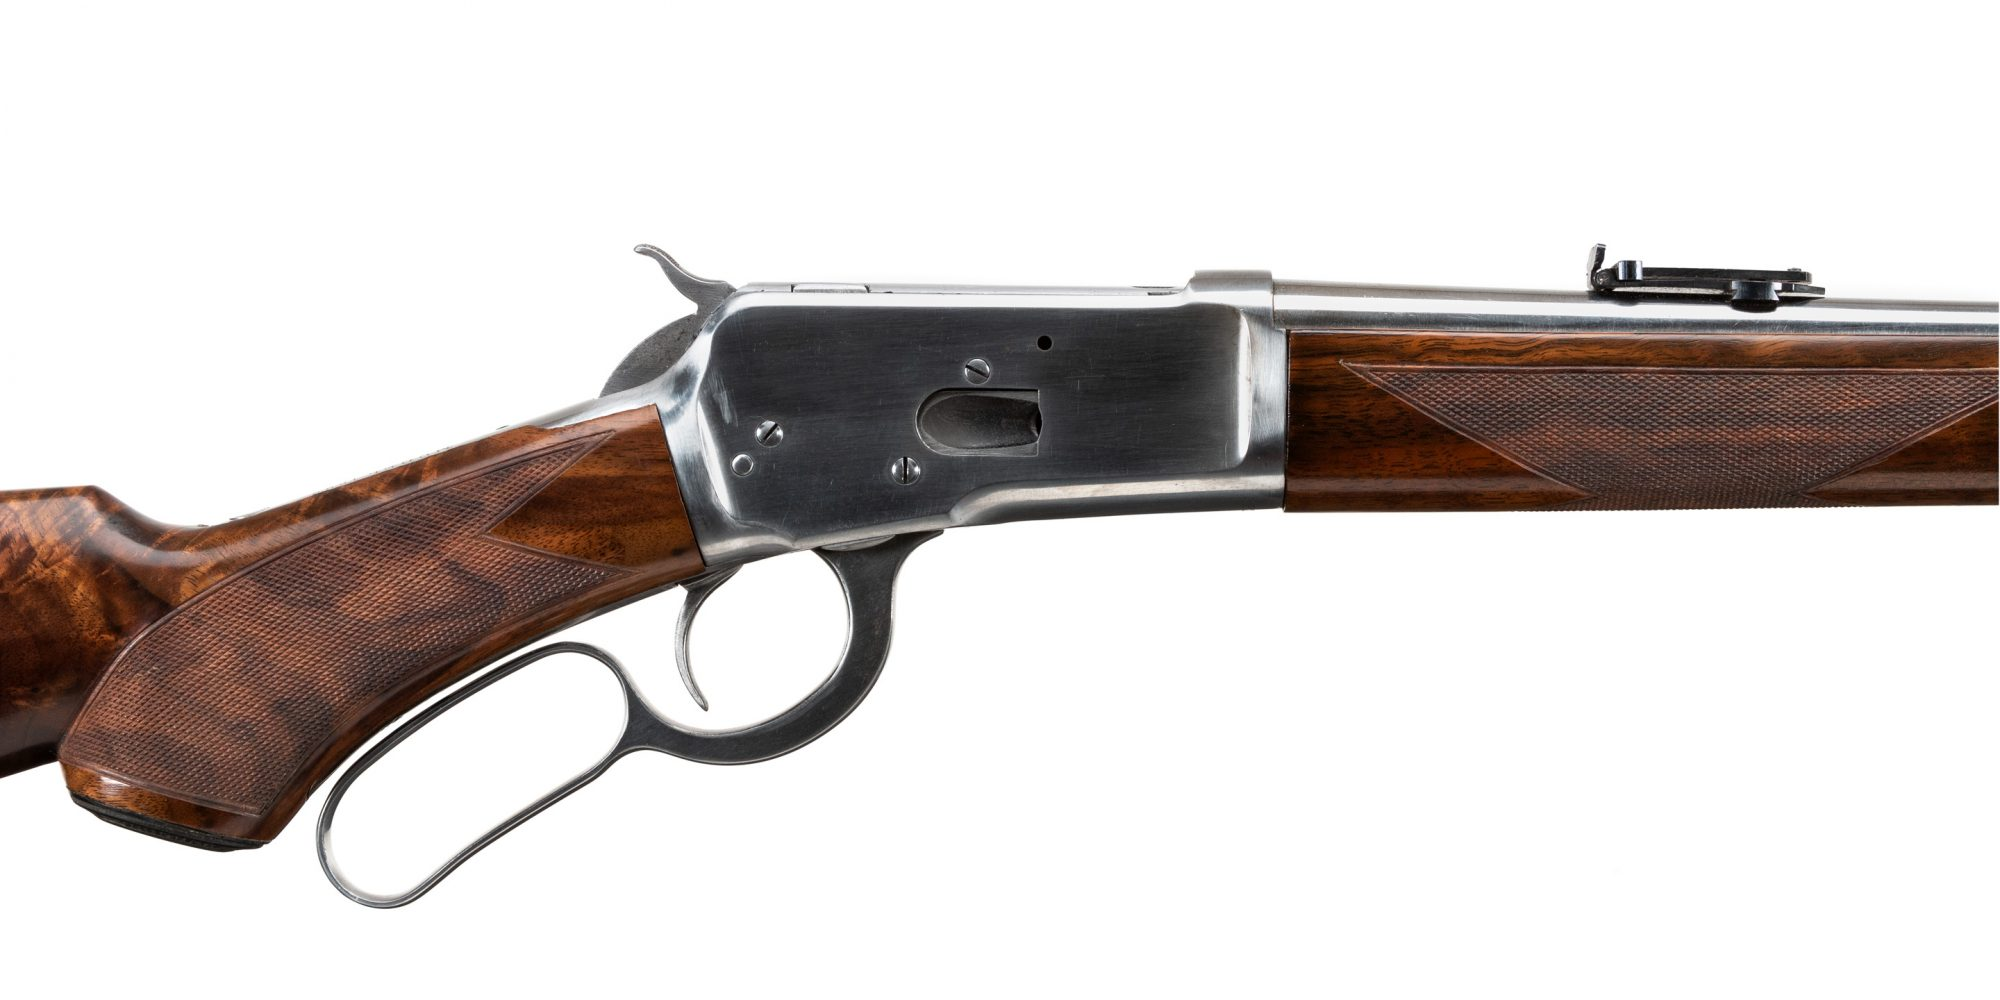 Photo of used Winchester Model 1892 SRC in .44-40 Win, metal in the white